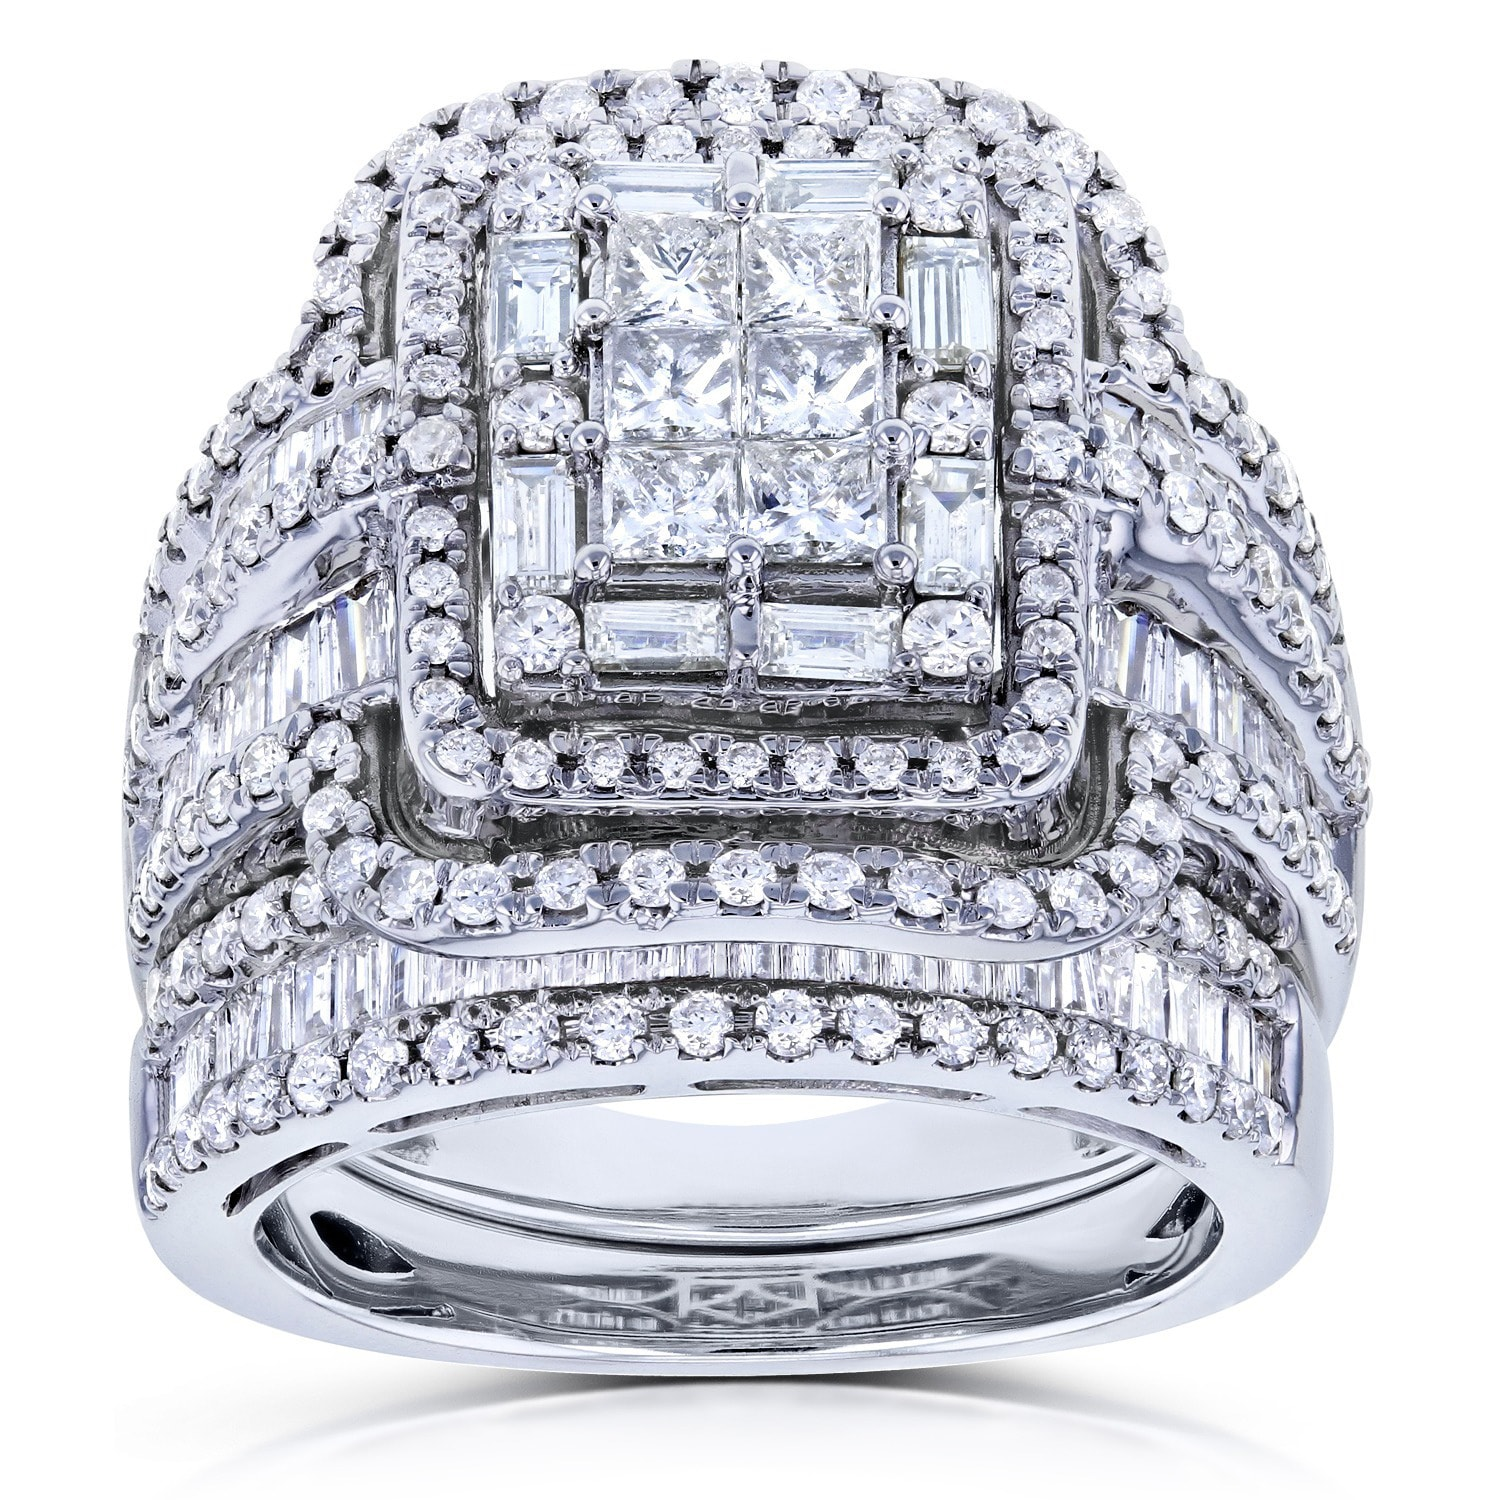 Intelligent 2.50 Carat Awesome Round Shape Solid 14kt White Gold Solitaire Engagement Ring Other Fine Rings